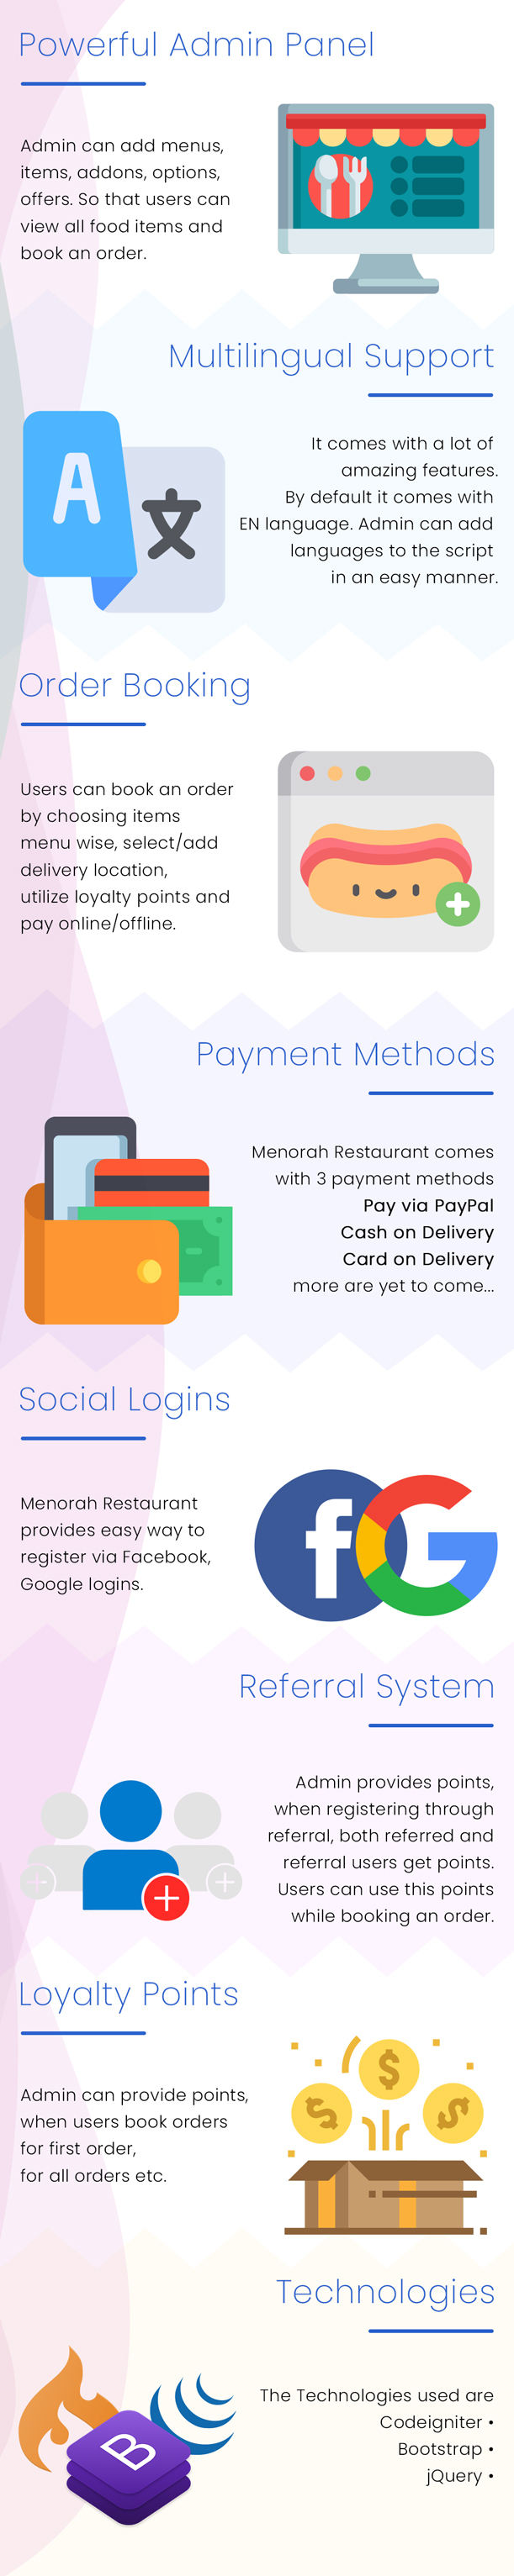 Menorah Restaurant - Restaurant Food Ordering System - 1